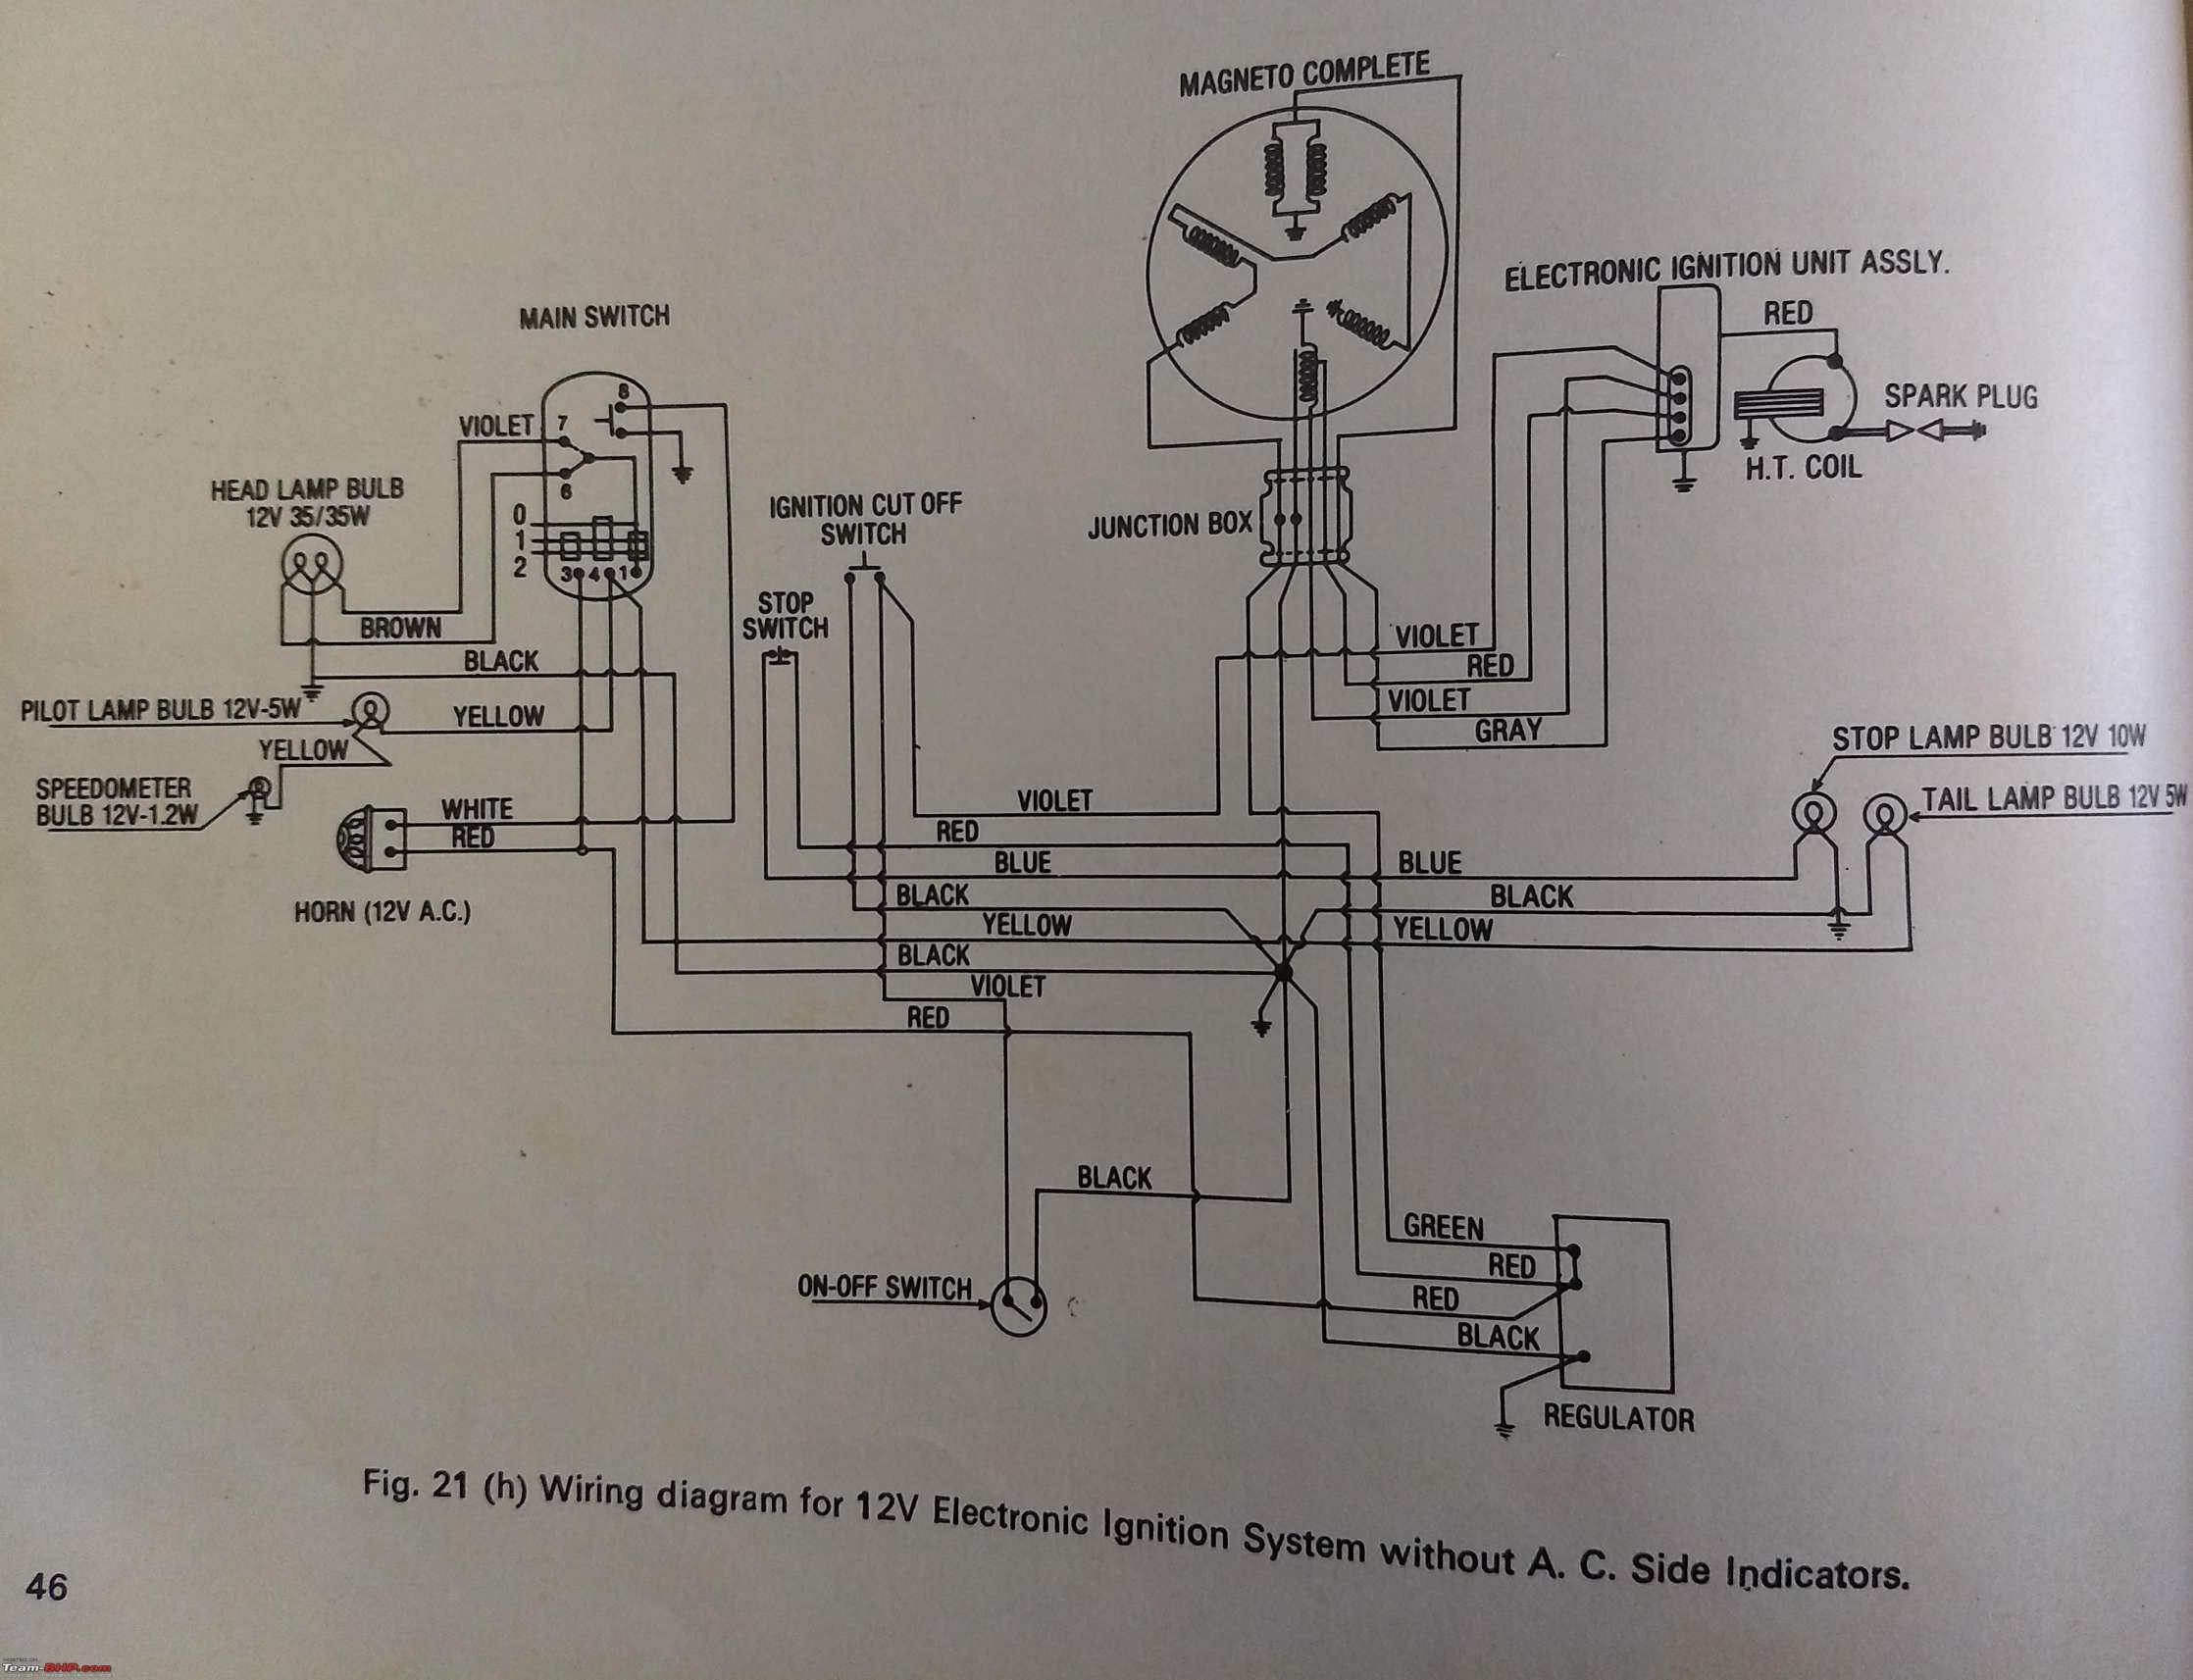 15+ Honda Activa Electrical Wiring Diagram - Wiring Diagram - Wiringg.net | Electrical  diagram, Electrical wiring diagram, Diagram | Two Side By Side Wiring Schematics |  | Pinterest